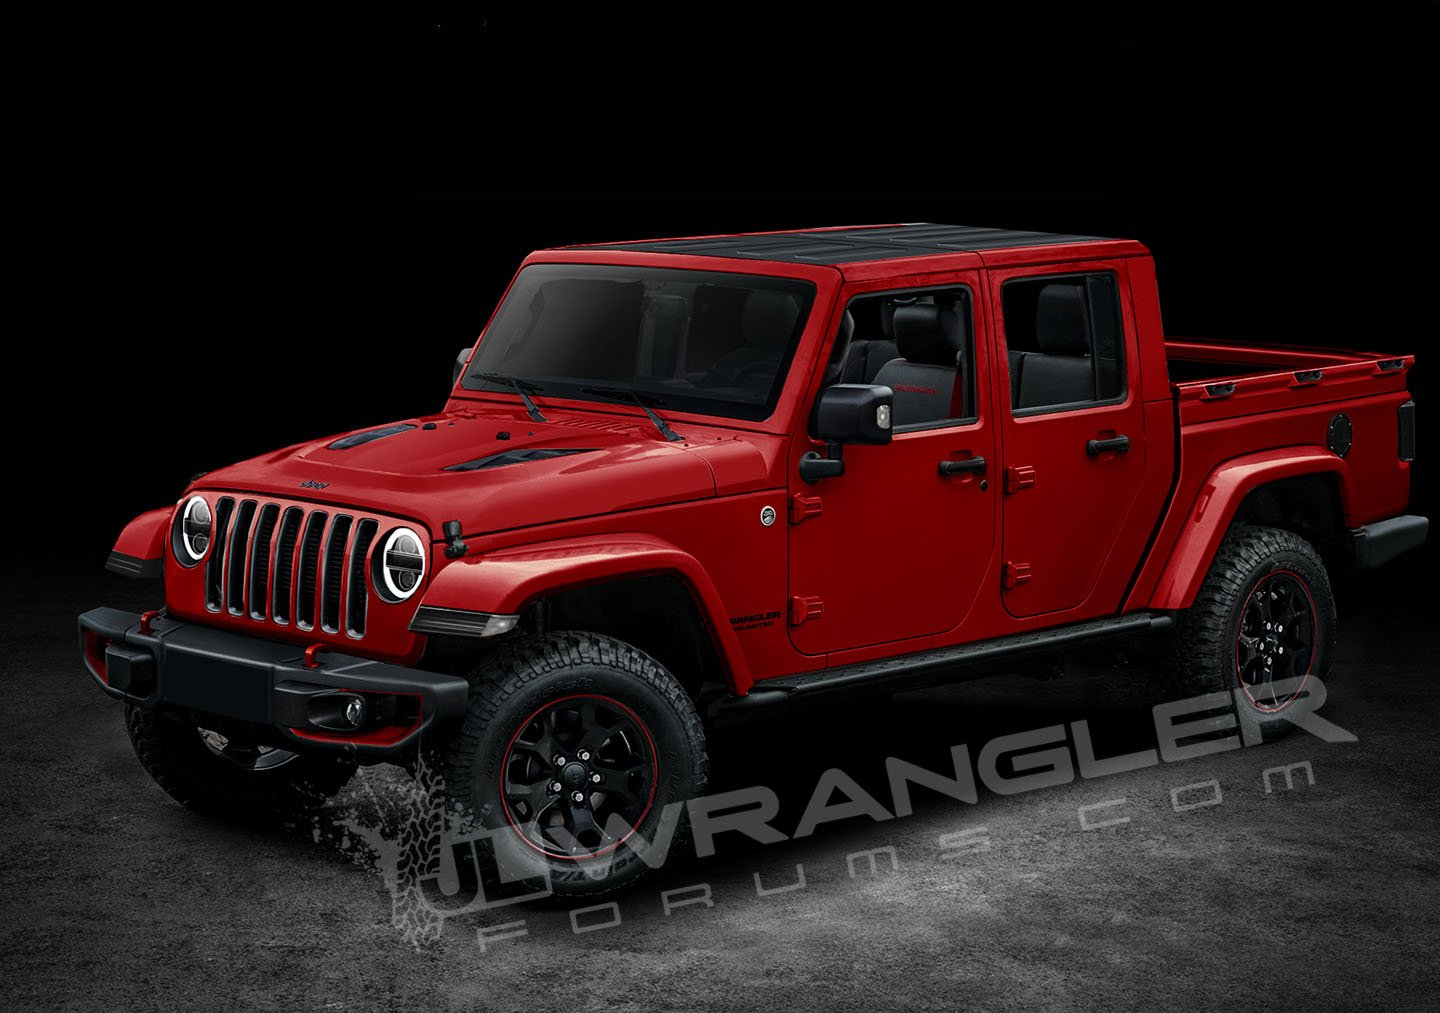 2019 Jeep Wrangler Pickup Looks Scrambler-rific In Latest ...